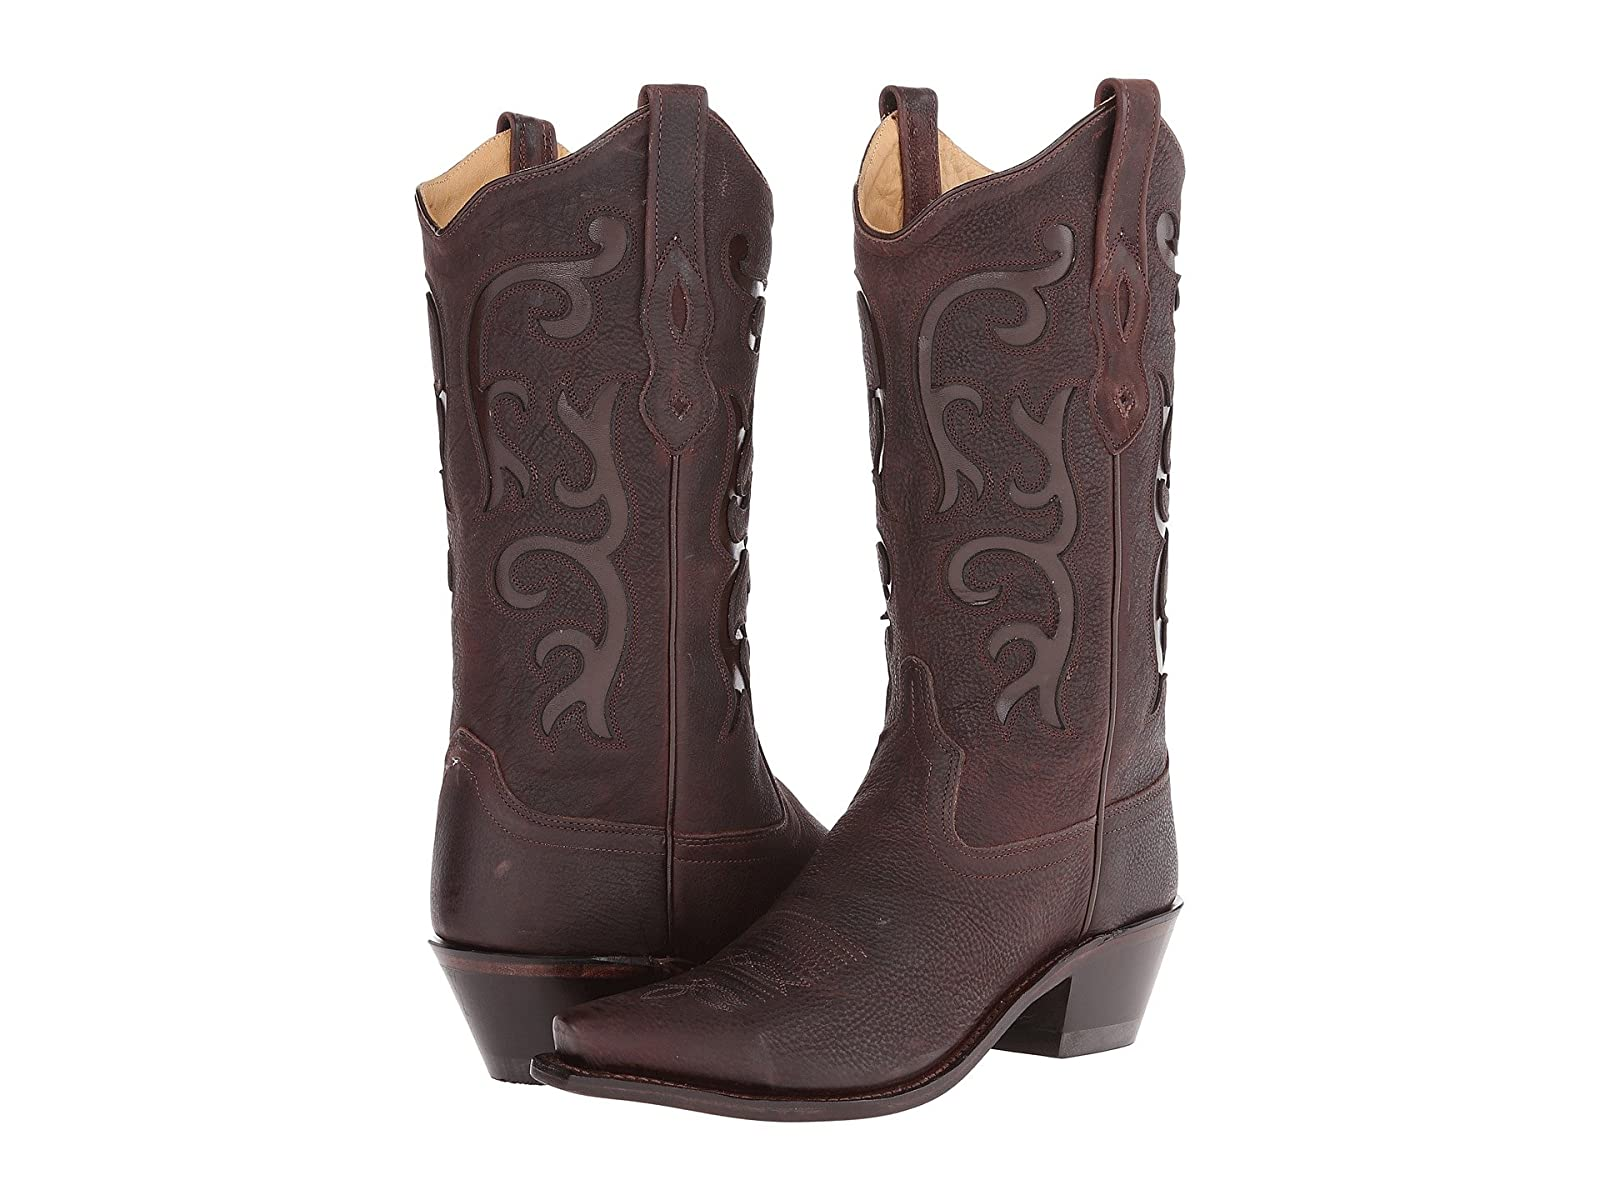 Old West Boots LF1578Economical and quality shoes